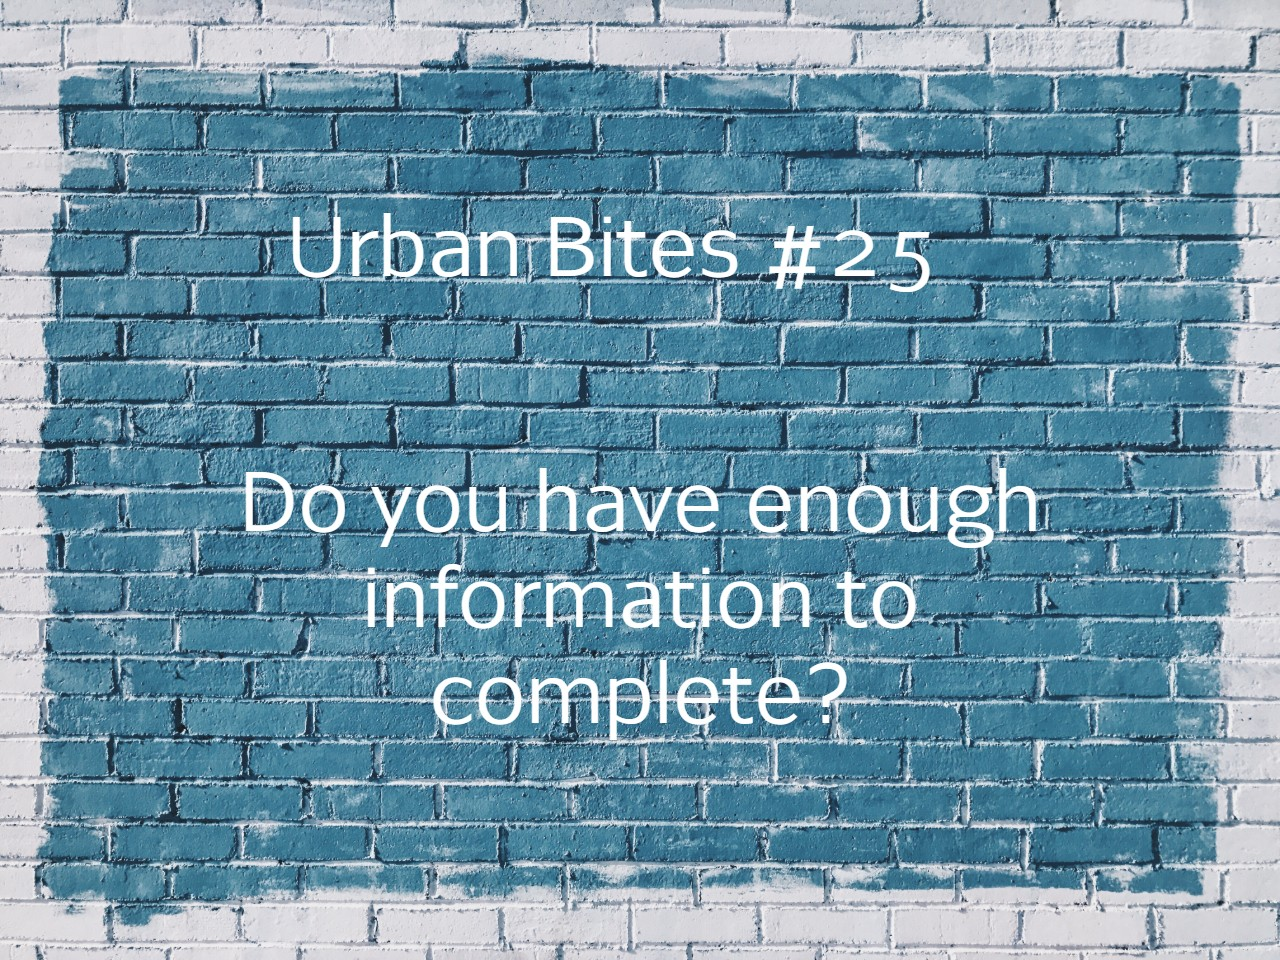 Urban Bites #25 - Do you have enough information to complete?